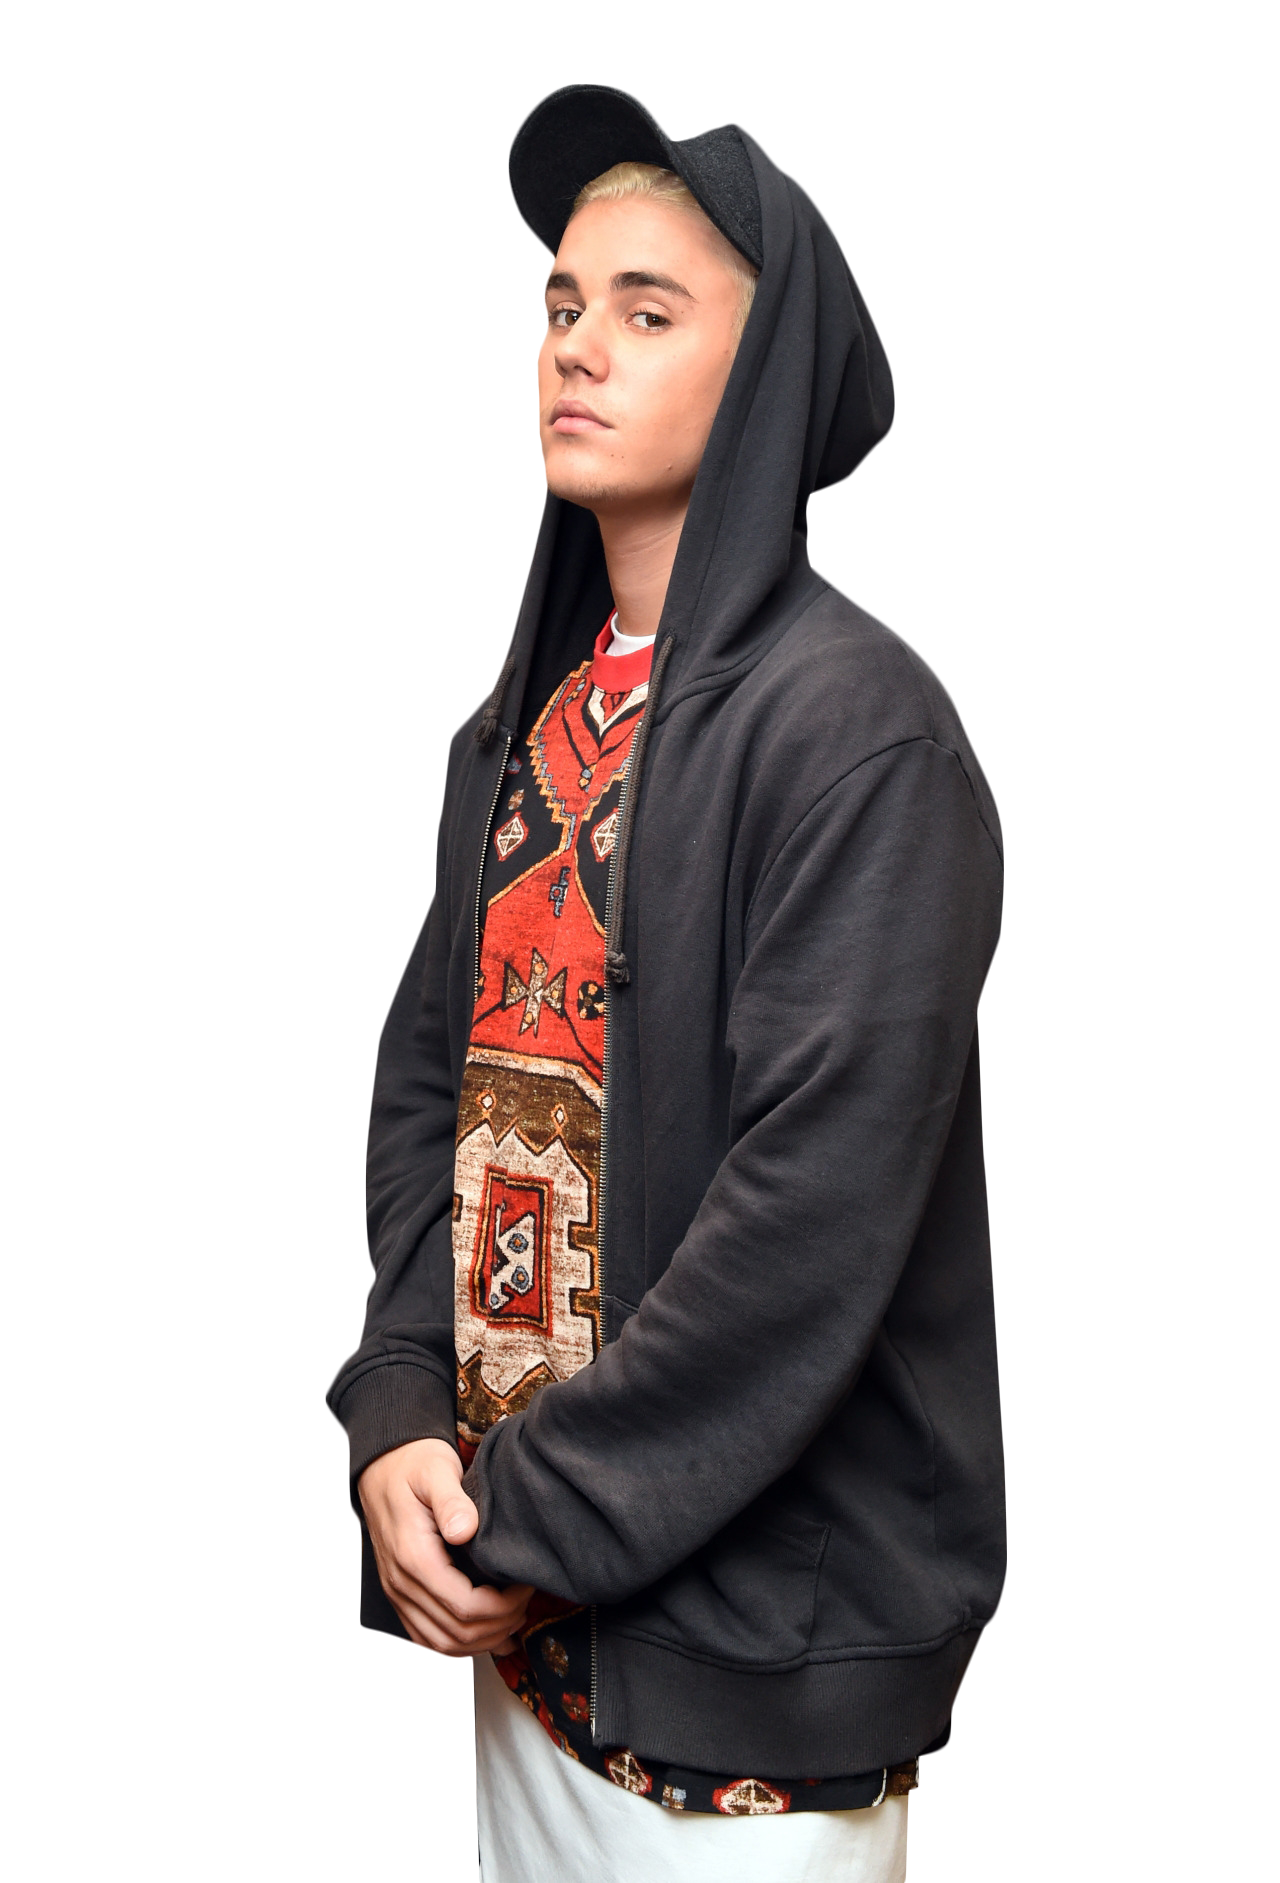 Justin Bieber Looking into Camera PNG Image